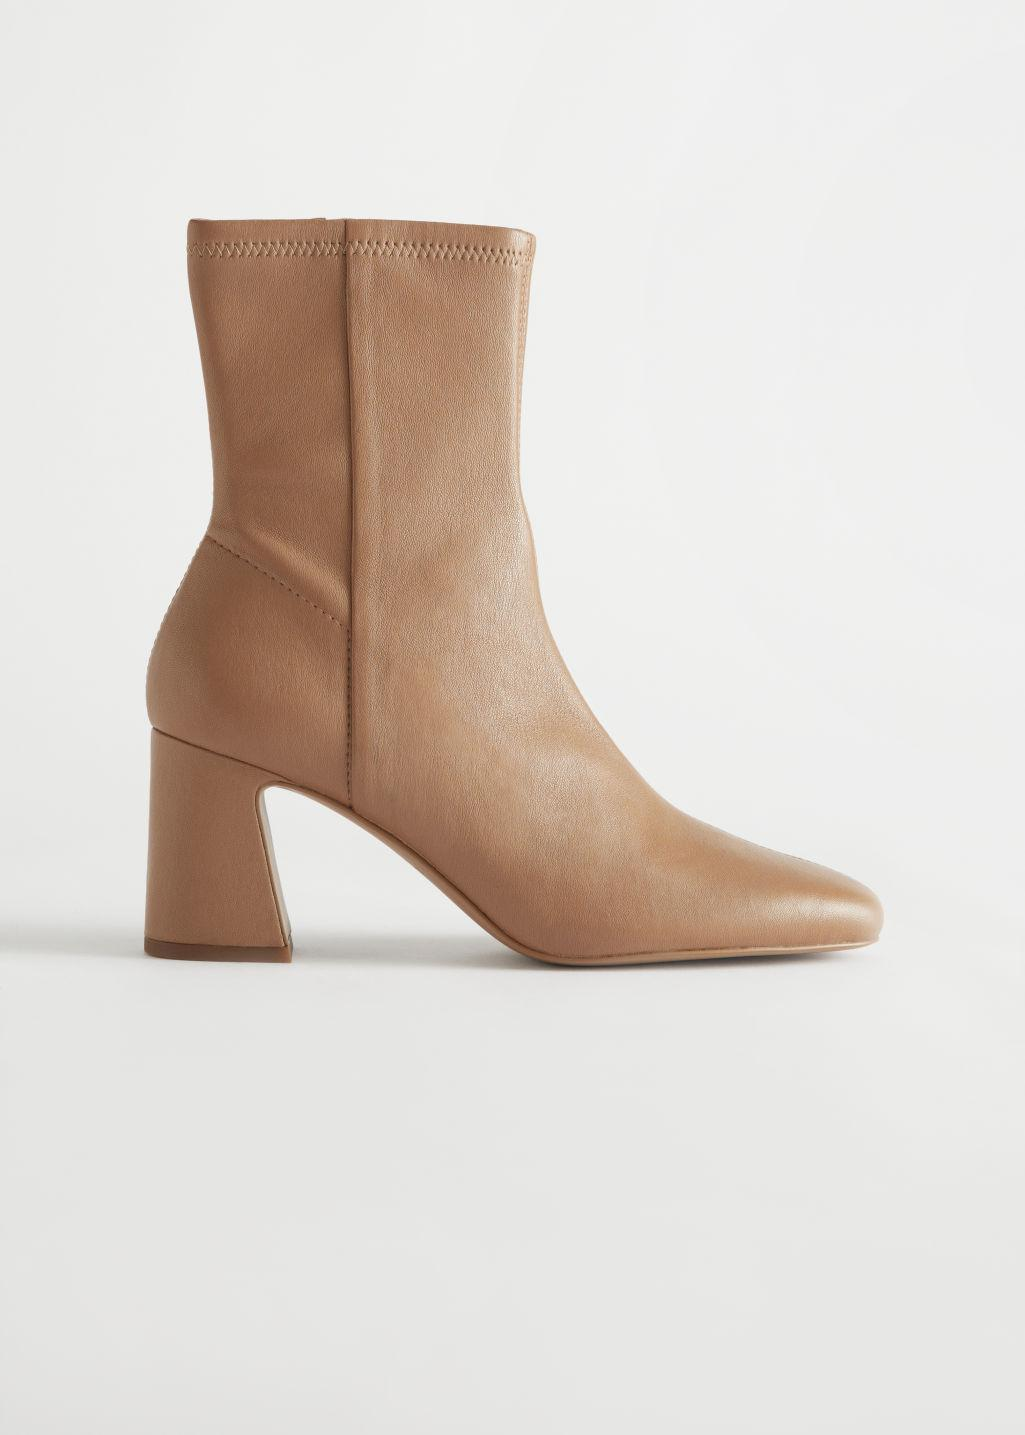 Almond Toe Leather Sock Boots